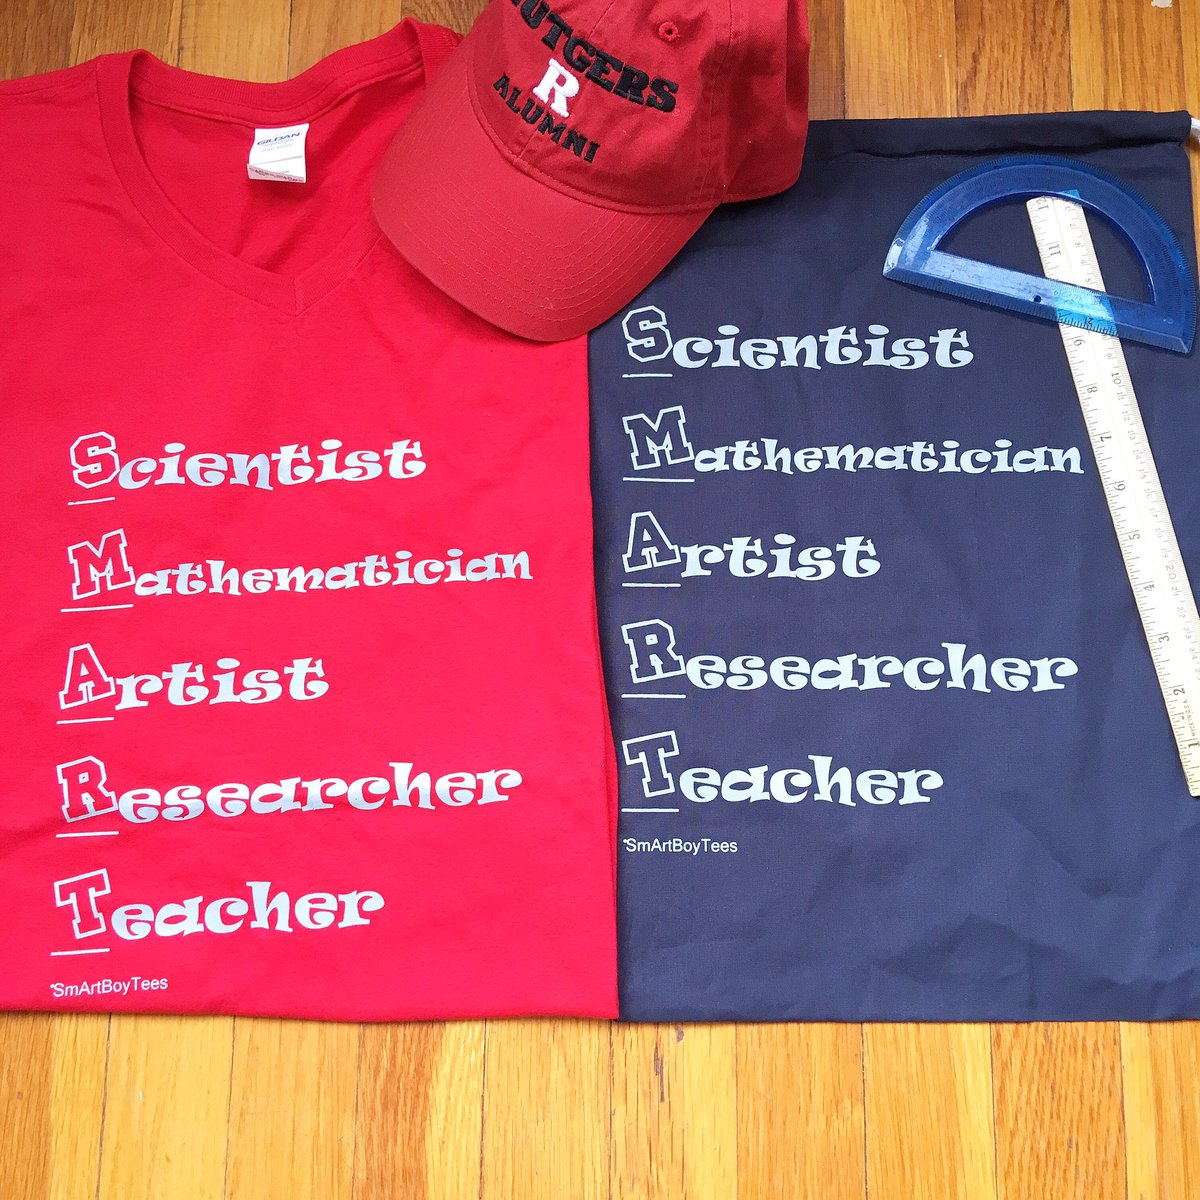 #Teacher #Scientist #Mathematician #Artist #Researcher order today  http://www. smartboytees.bigcartel.com  &nbsp;   &quot;SmArt Career&quot; Tee #smallbiz #shopsmall<br>http://pic.twitter.com/uwfqQvyIQb